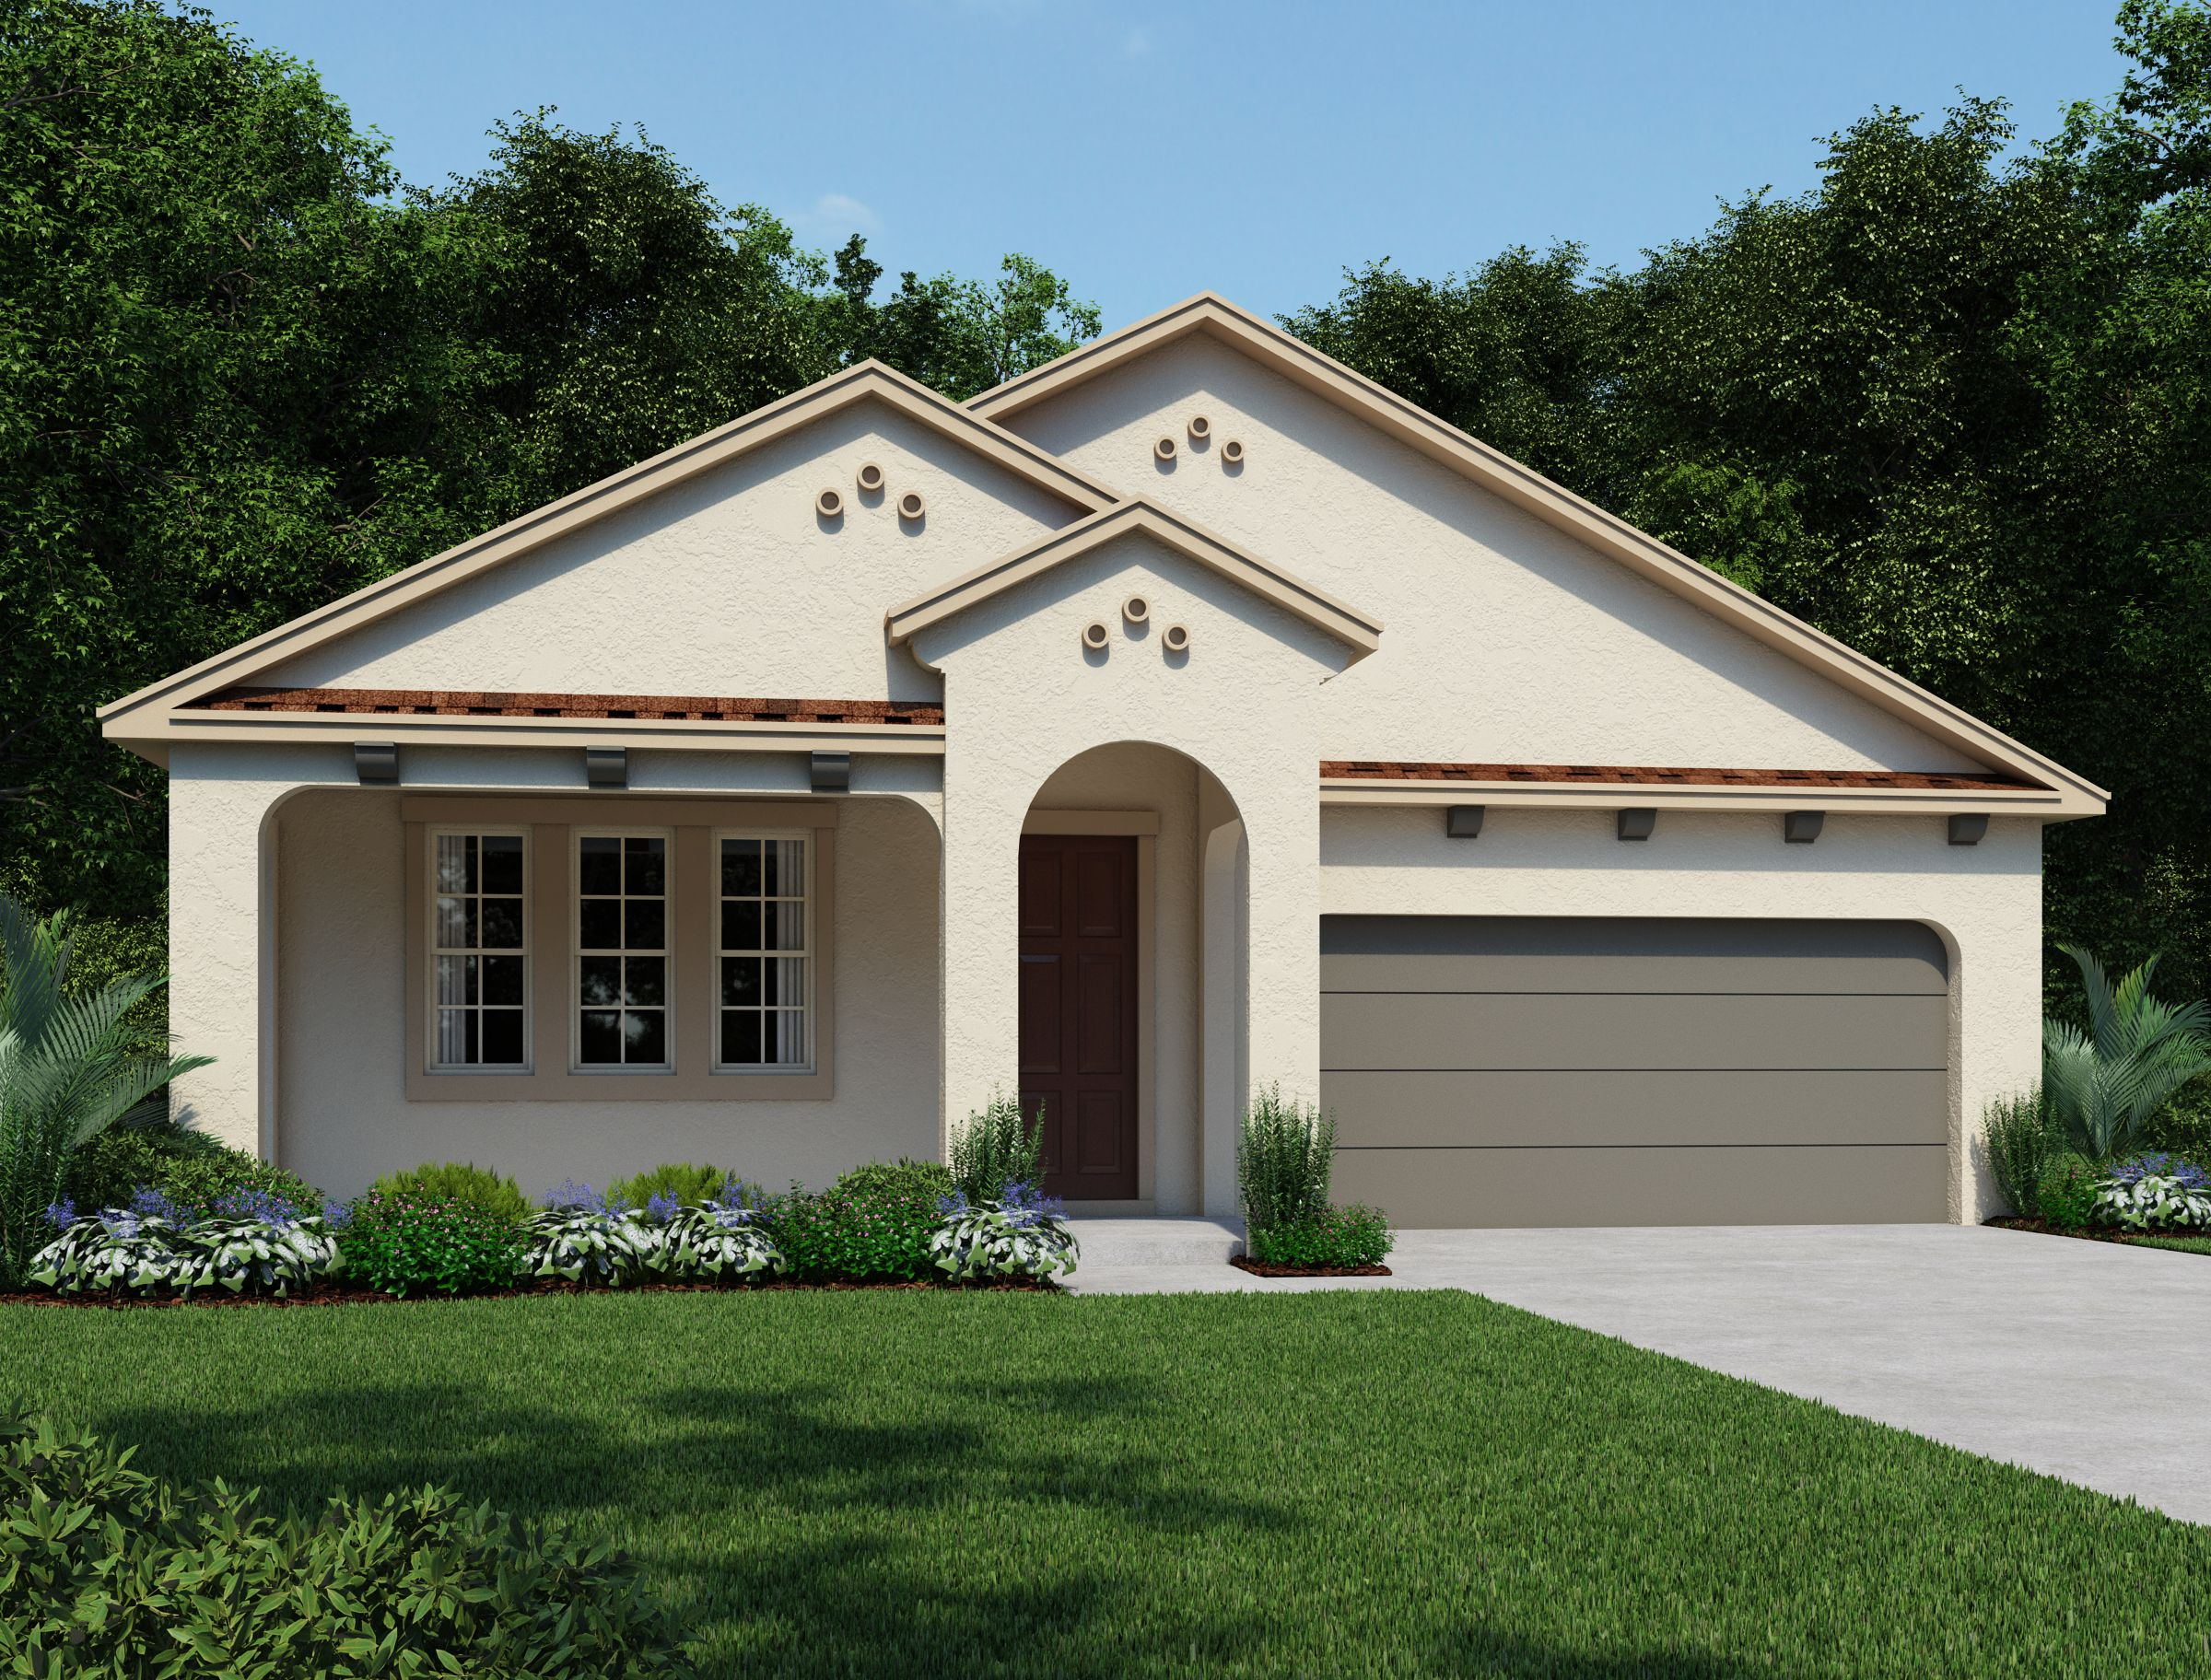 Palmer park new homes in sarasota fl by ashton woods homes for Palmers homes